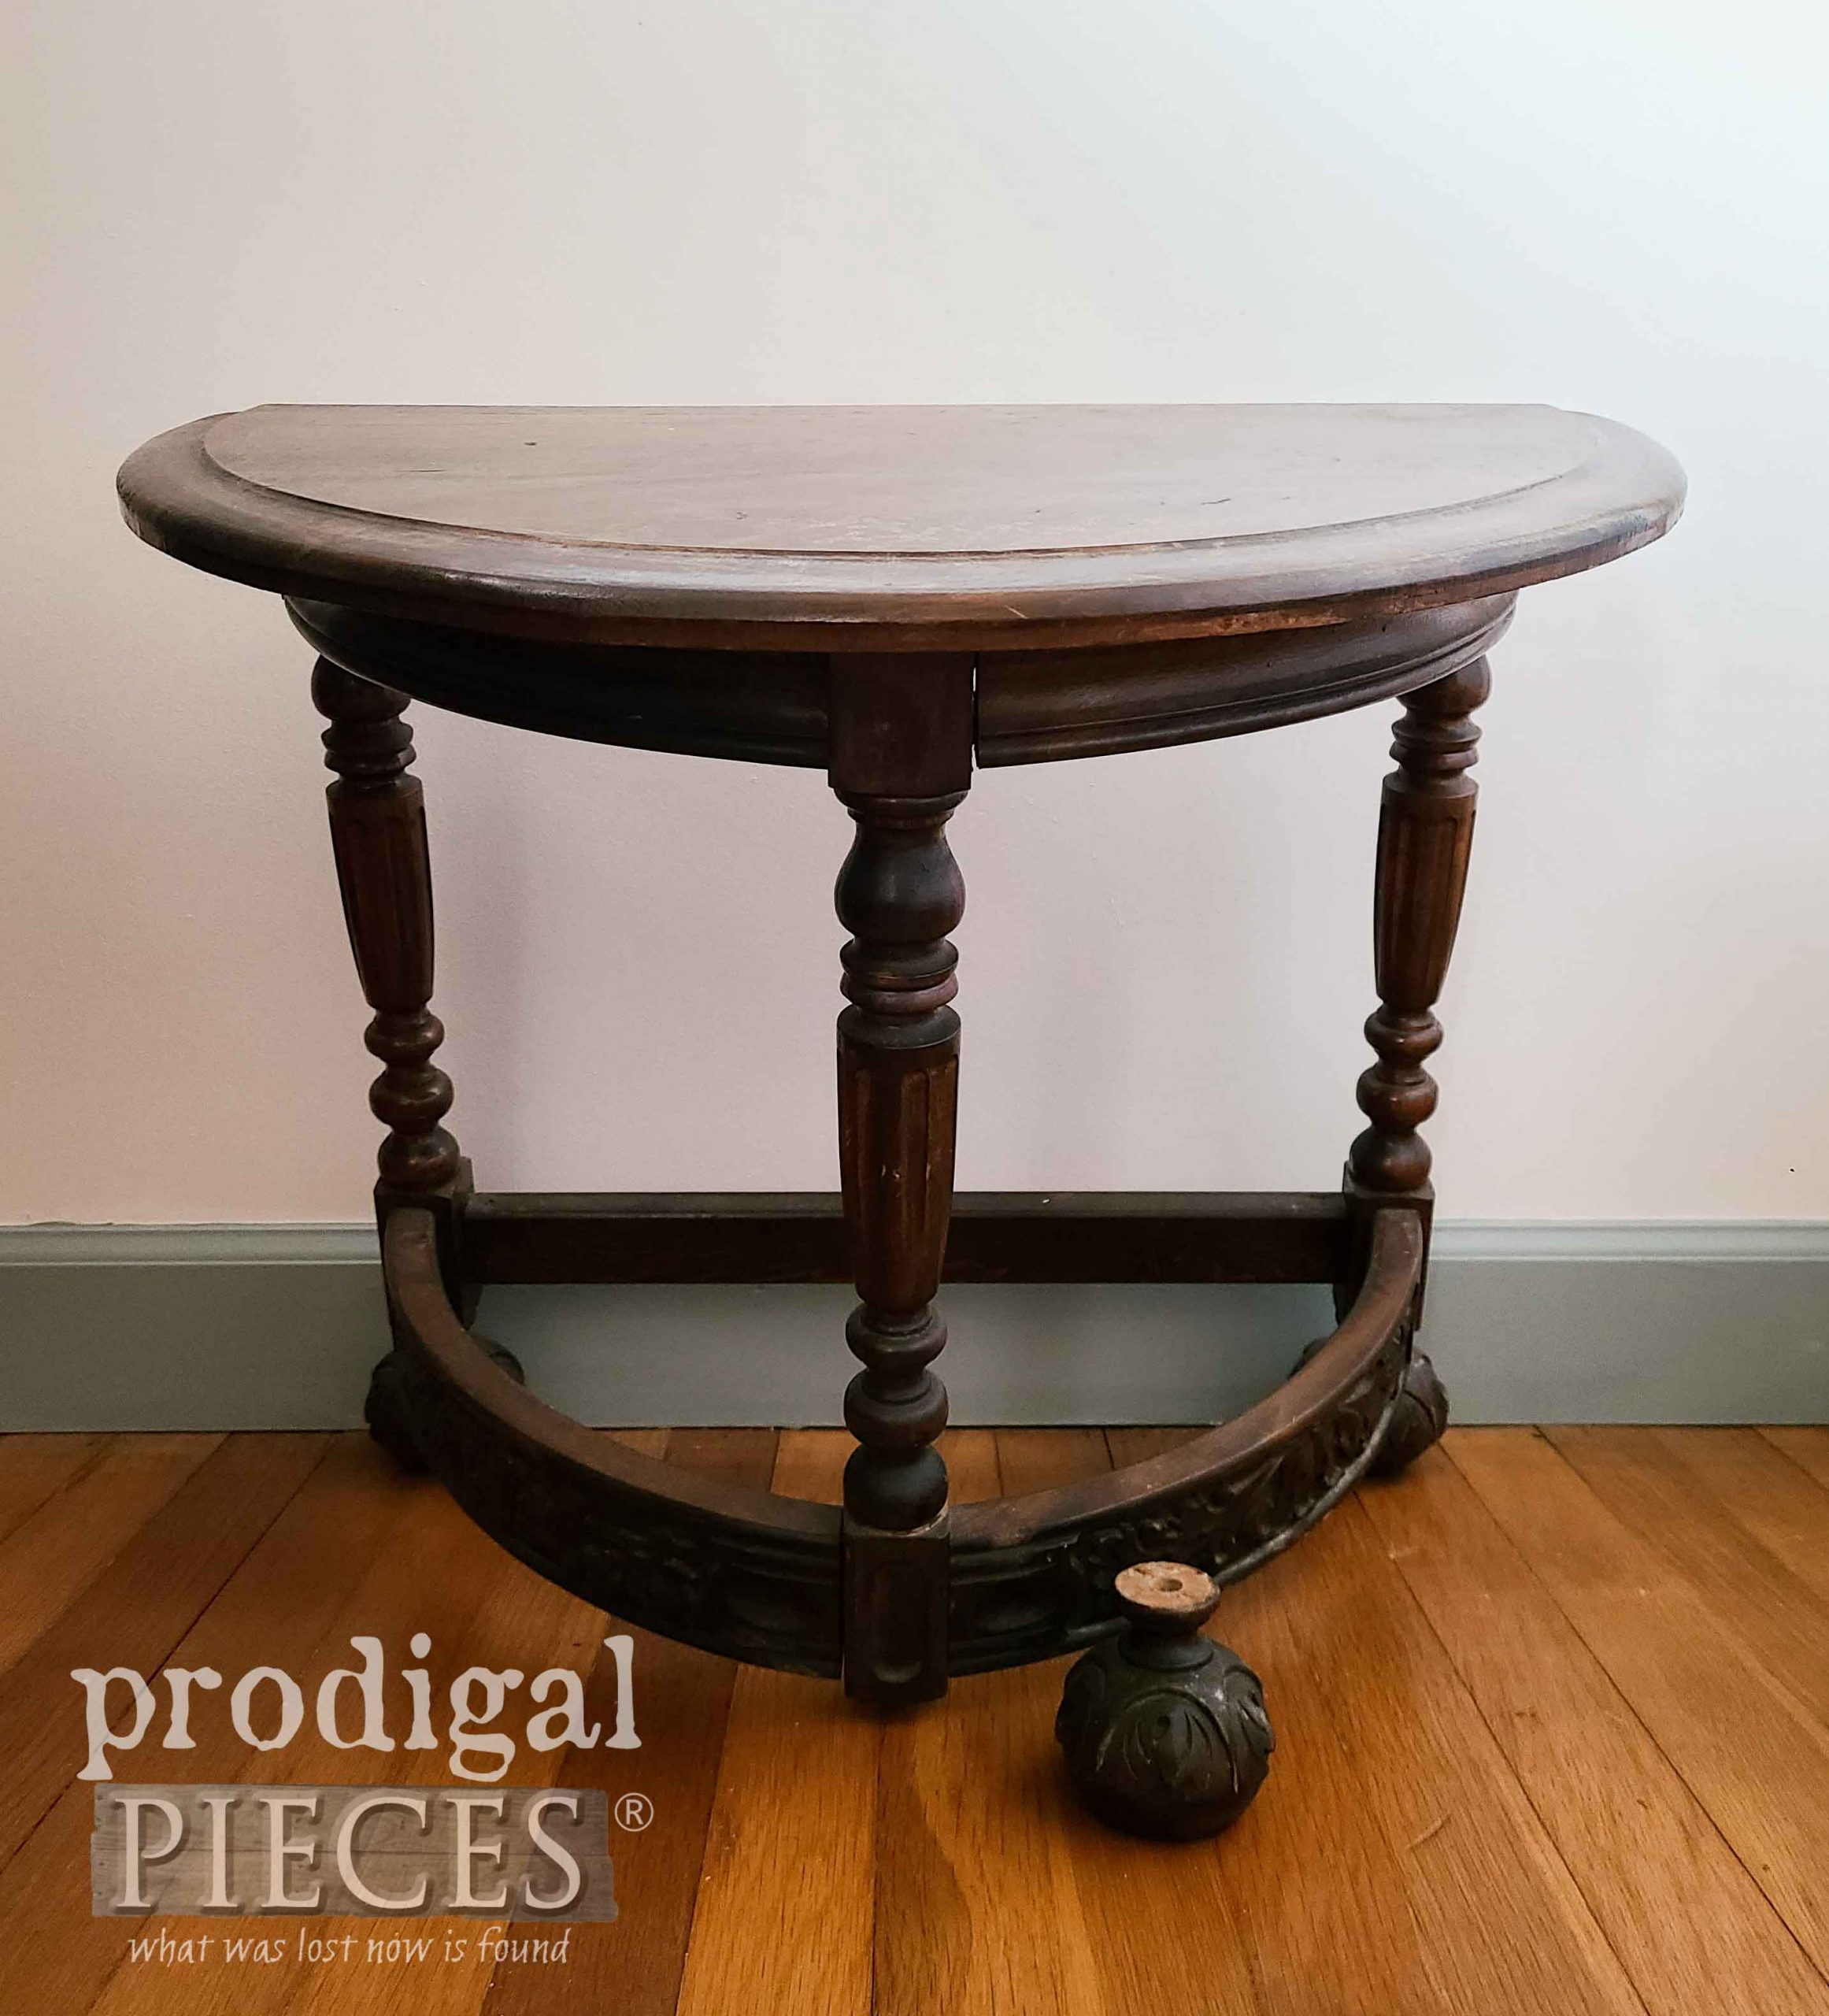 Antique Half-Round Table Before Makeover by Prodigal Pieces | prodigalpieces.com